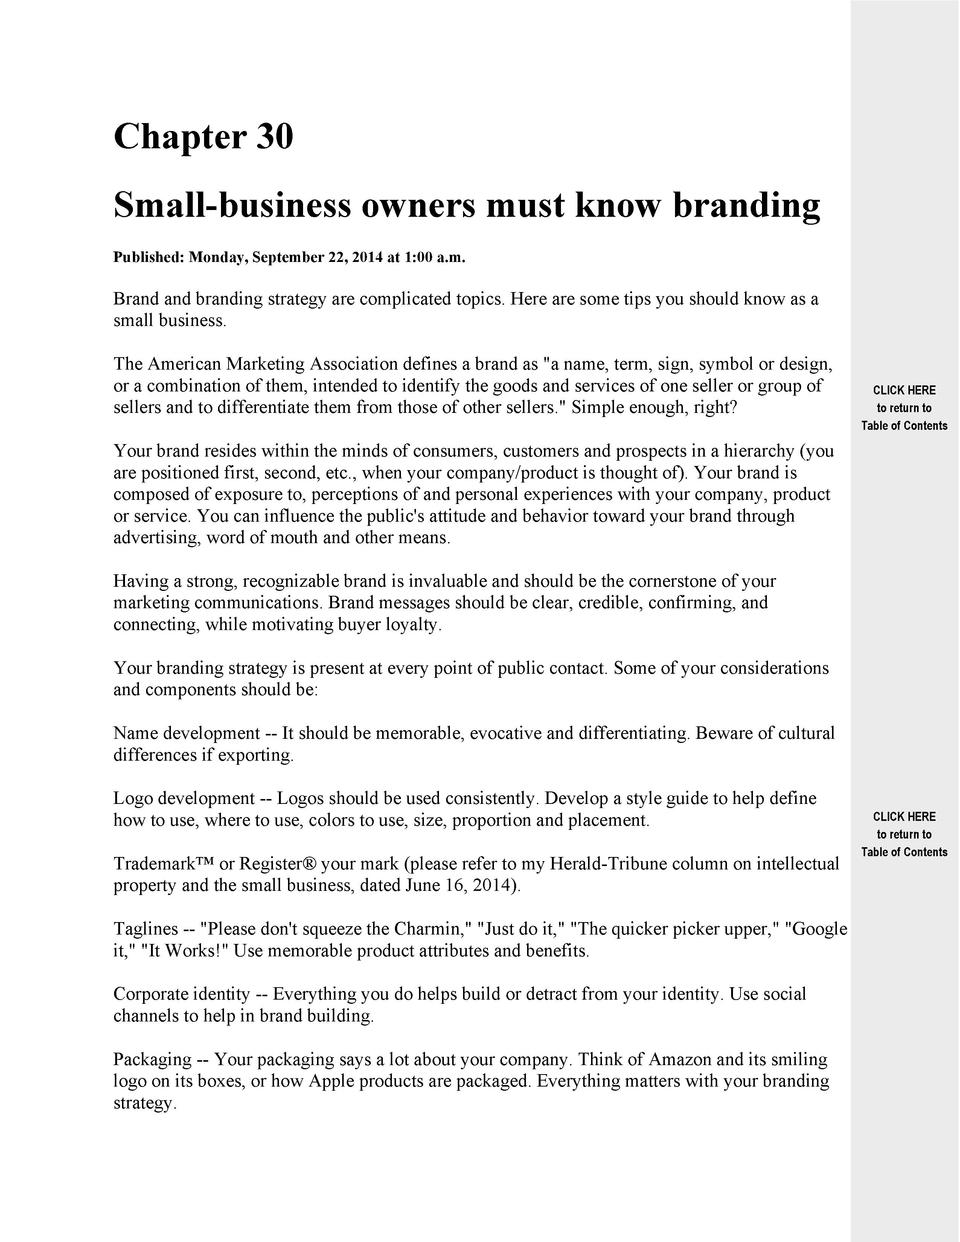 Chapter 30 Small-business owners must know branding Published  Monday, September 22, 2014 at 1 00 a.m.  Brand and branding...